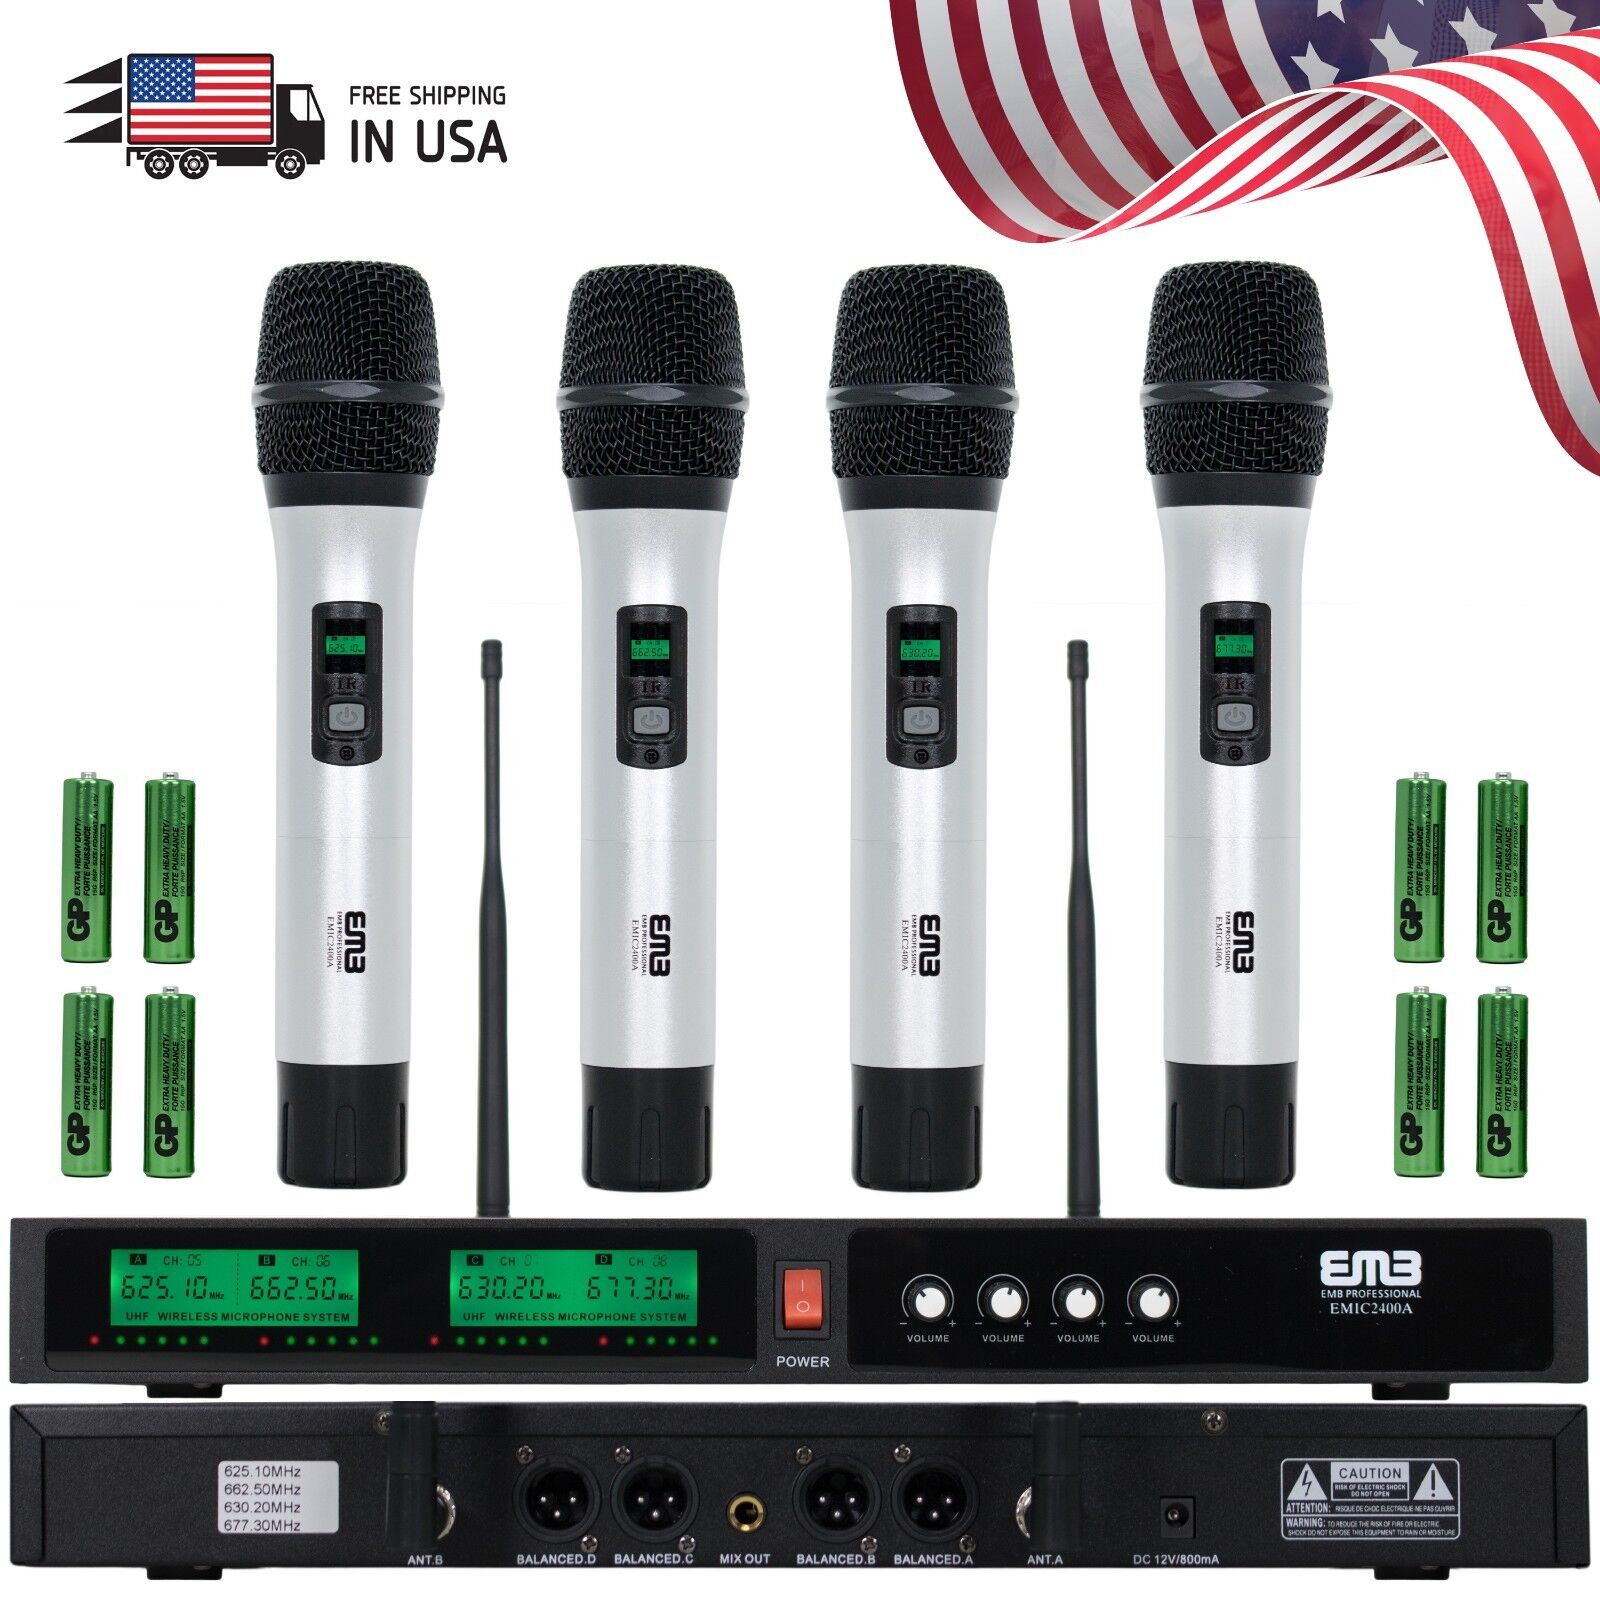 New EMB Audio 4 Channel Quad UHF Handheld Wireless Microphon